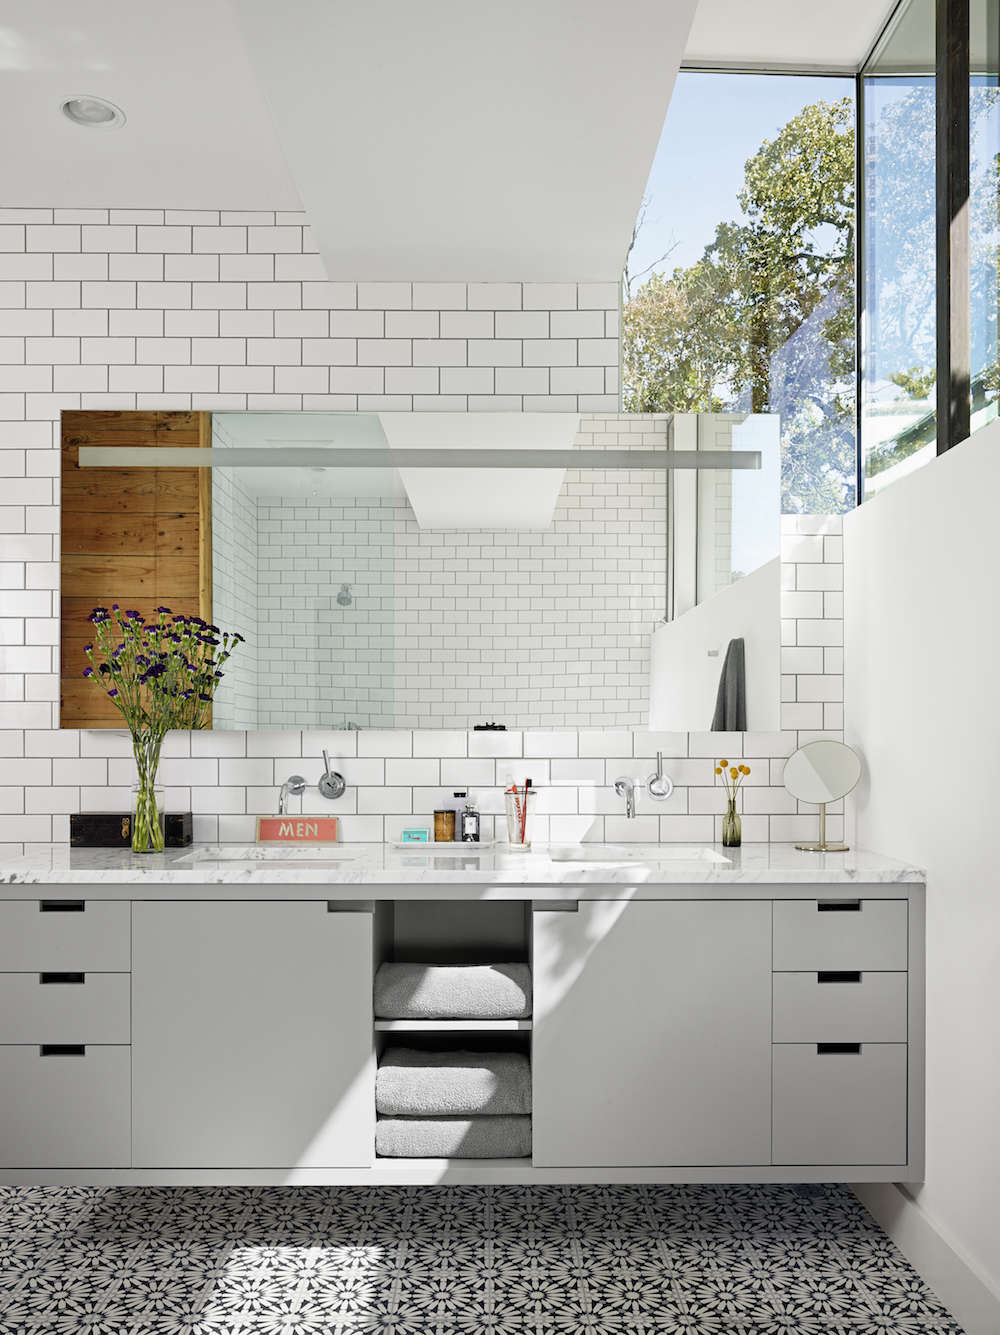 Remodeling 101: How to Choose the Right Tile Grout - Remodelista